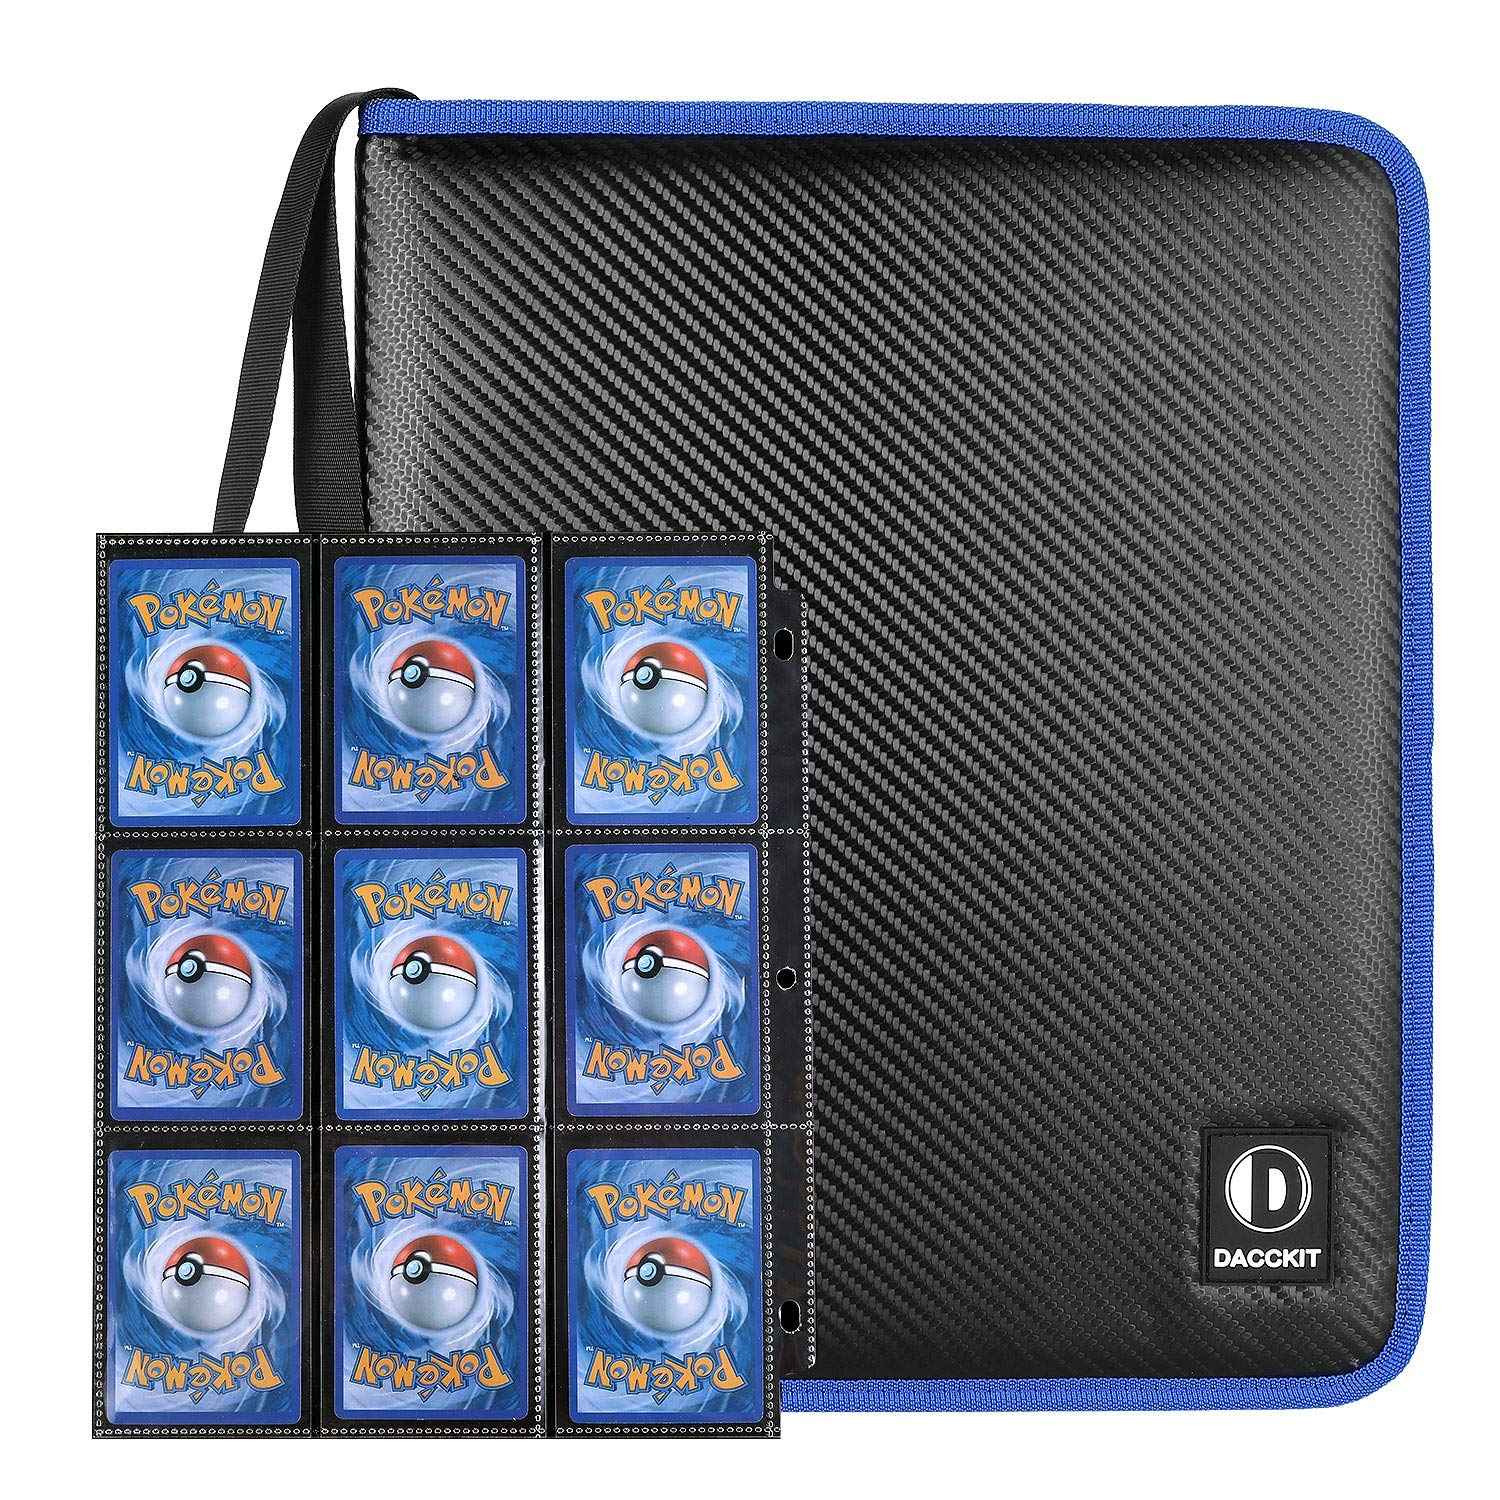 D DACCKIT Carrying Case Compatible with Pokemon Trading Cards, Cards Collectors Album with 30 Premium 9-Pocket Pages, Holds Up to 540 Cards by D DACCKIT (Image #2)